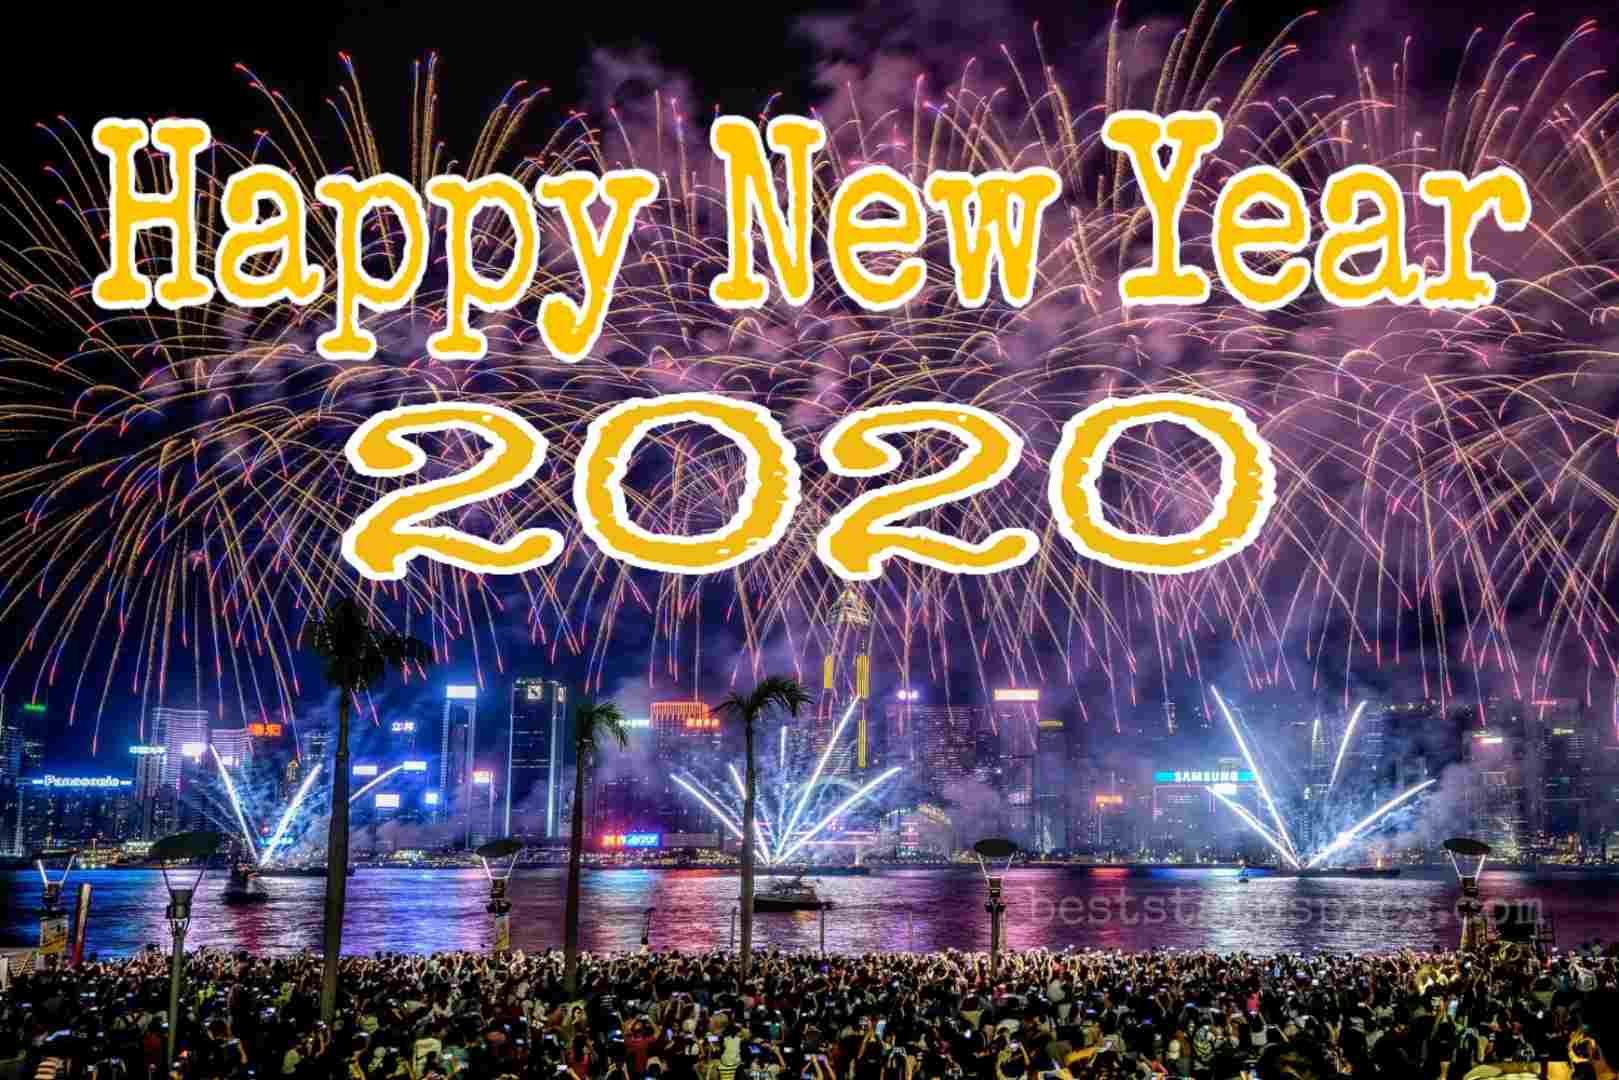 Download Happy New Year 2020 Image Facebook profile pics